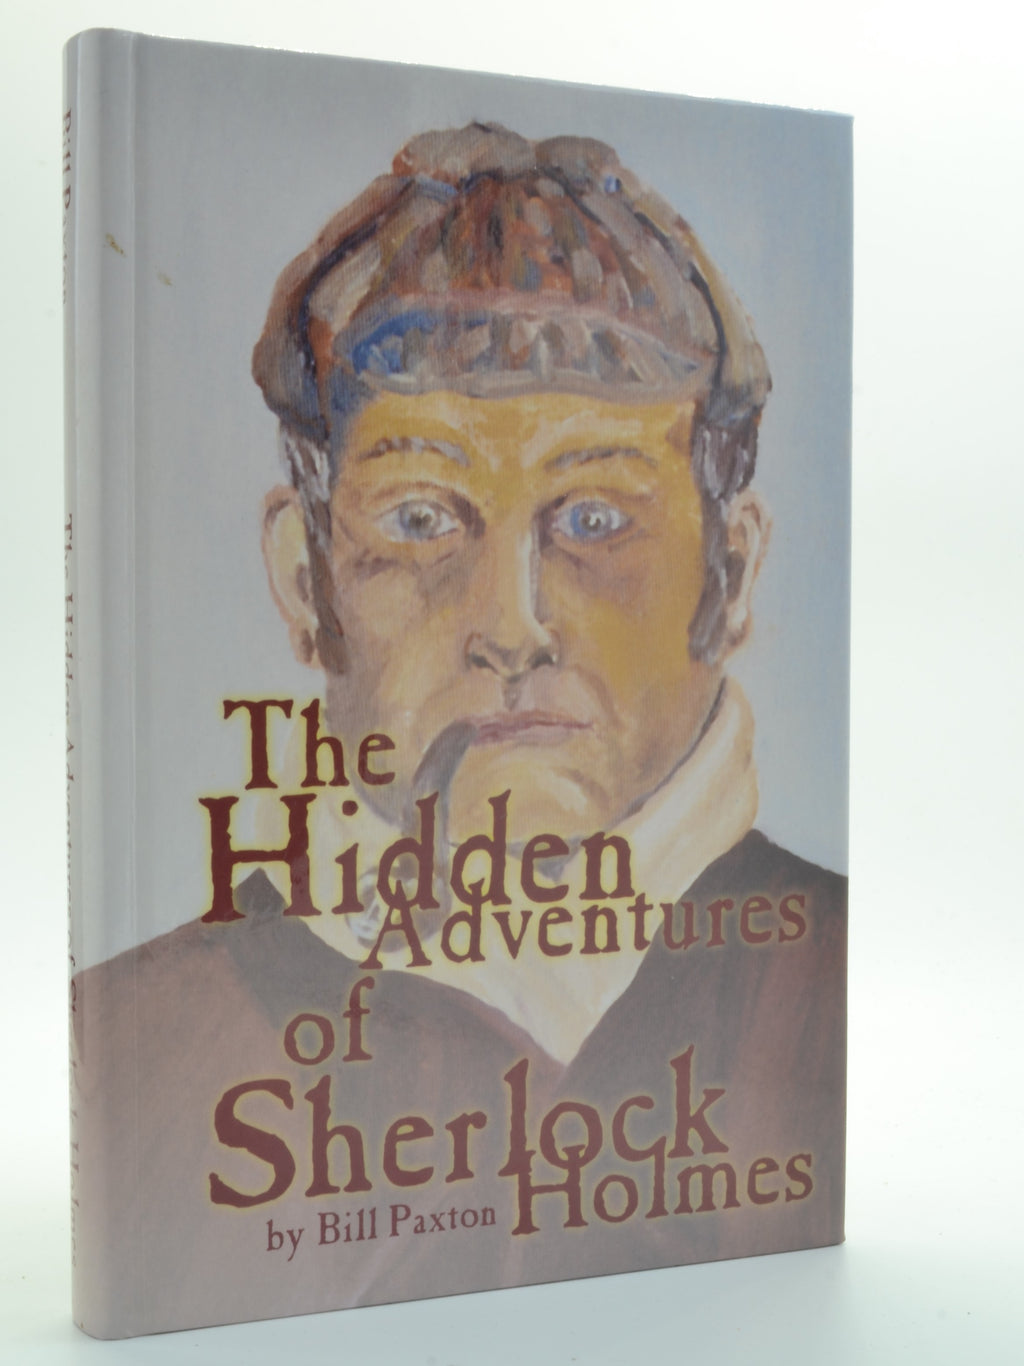 Paxton, Bill - The Hidden Adventures of Sherlock Holmes  - SIGNED